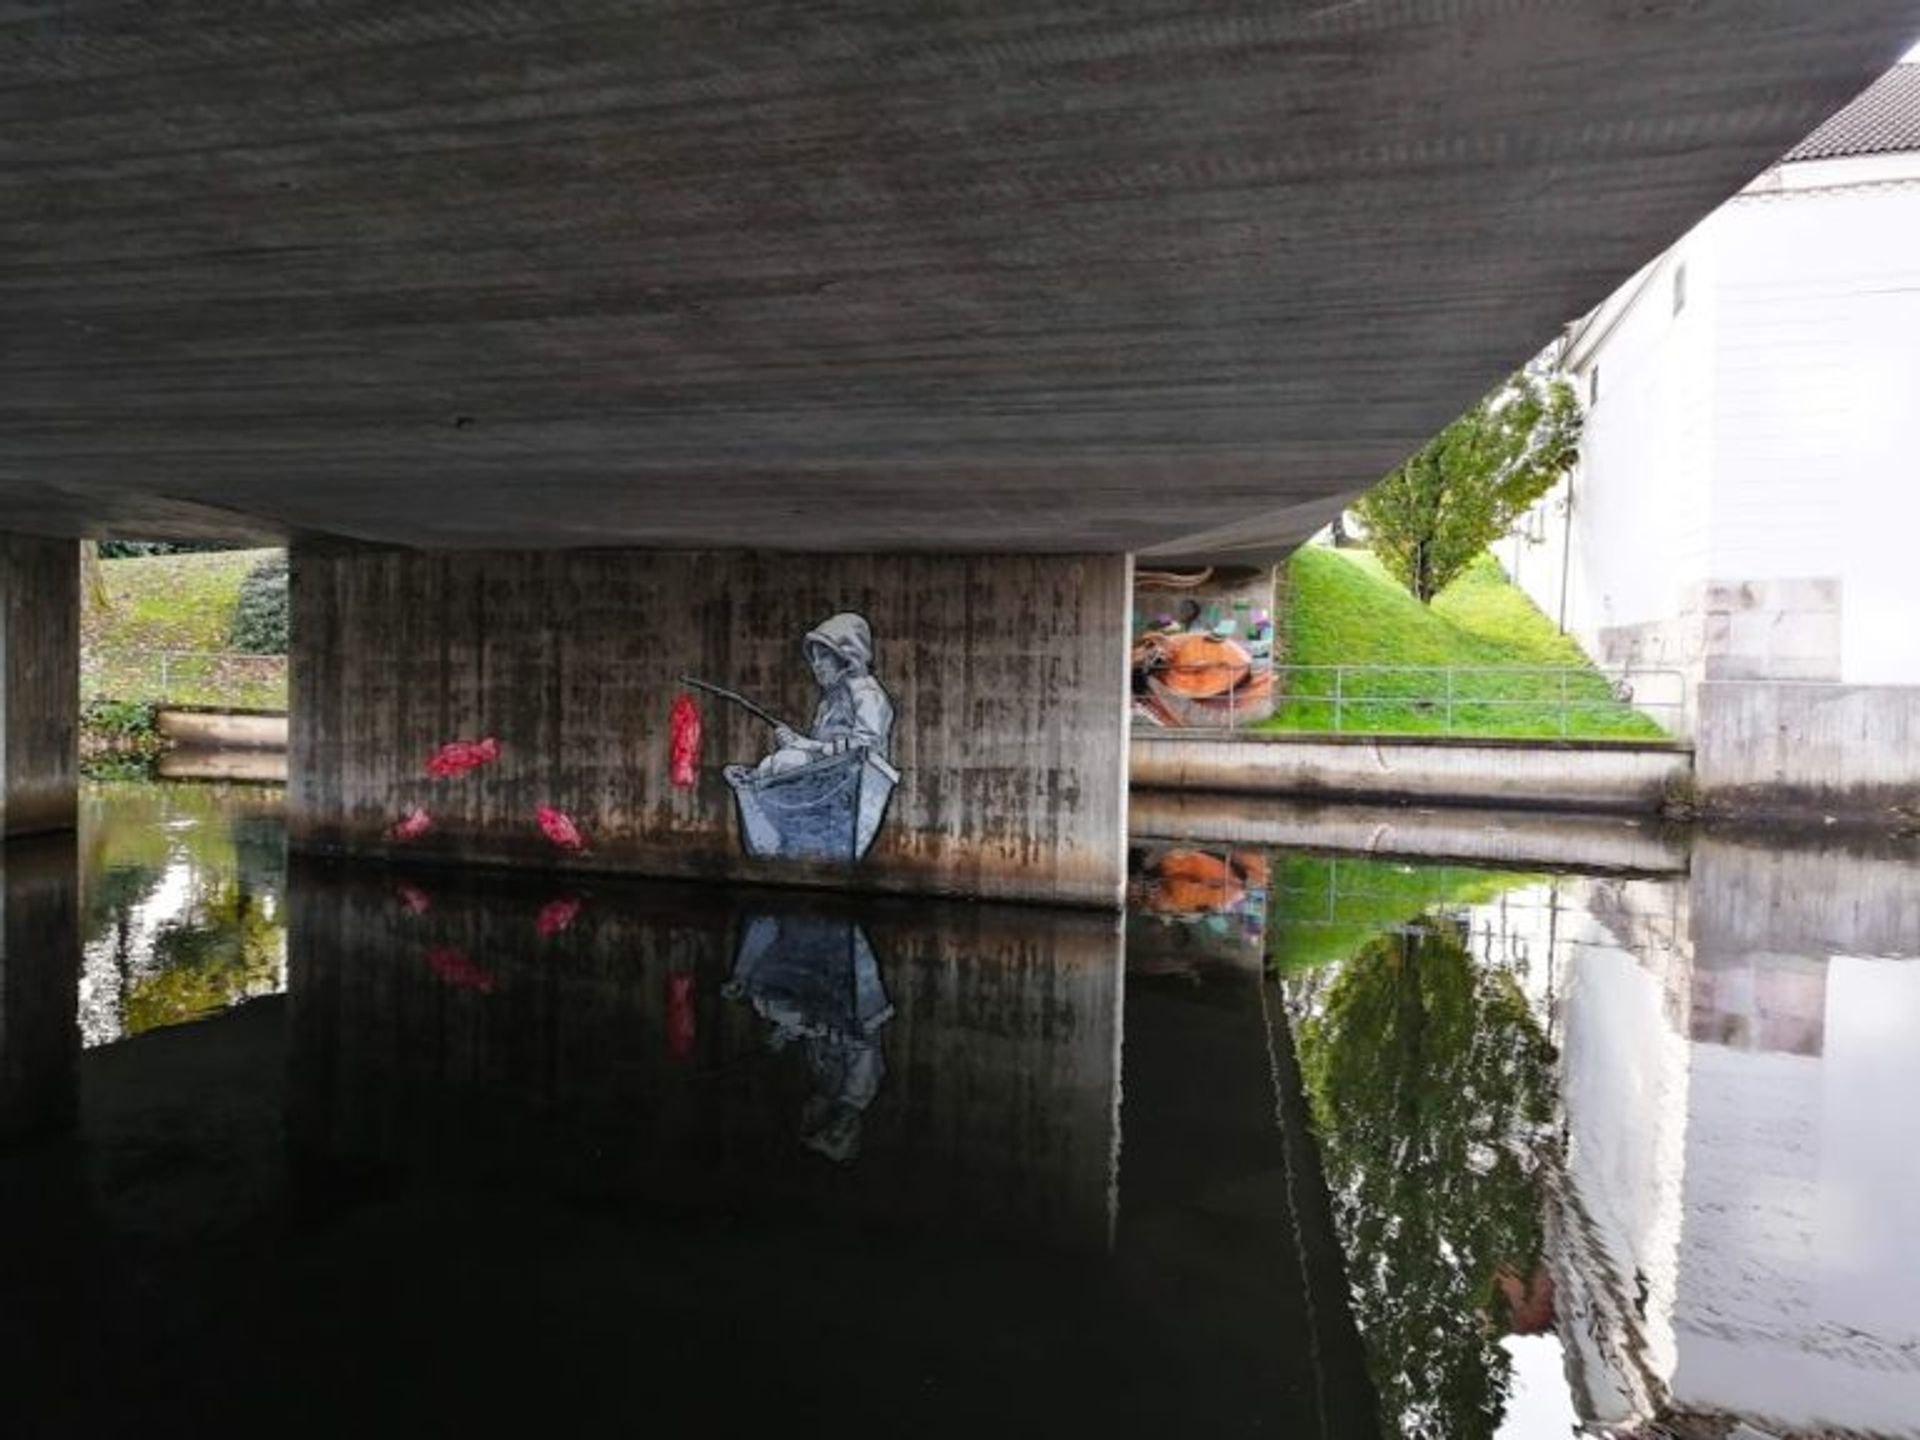 Mural of a child fishing in a boat painted on the side of a concrete pile of a bridge in Borås.